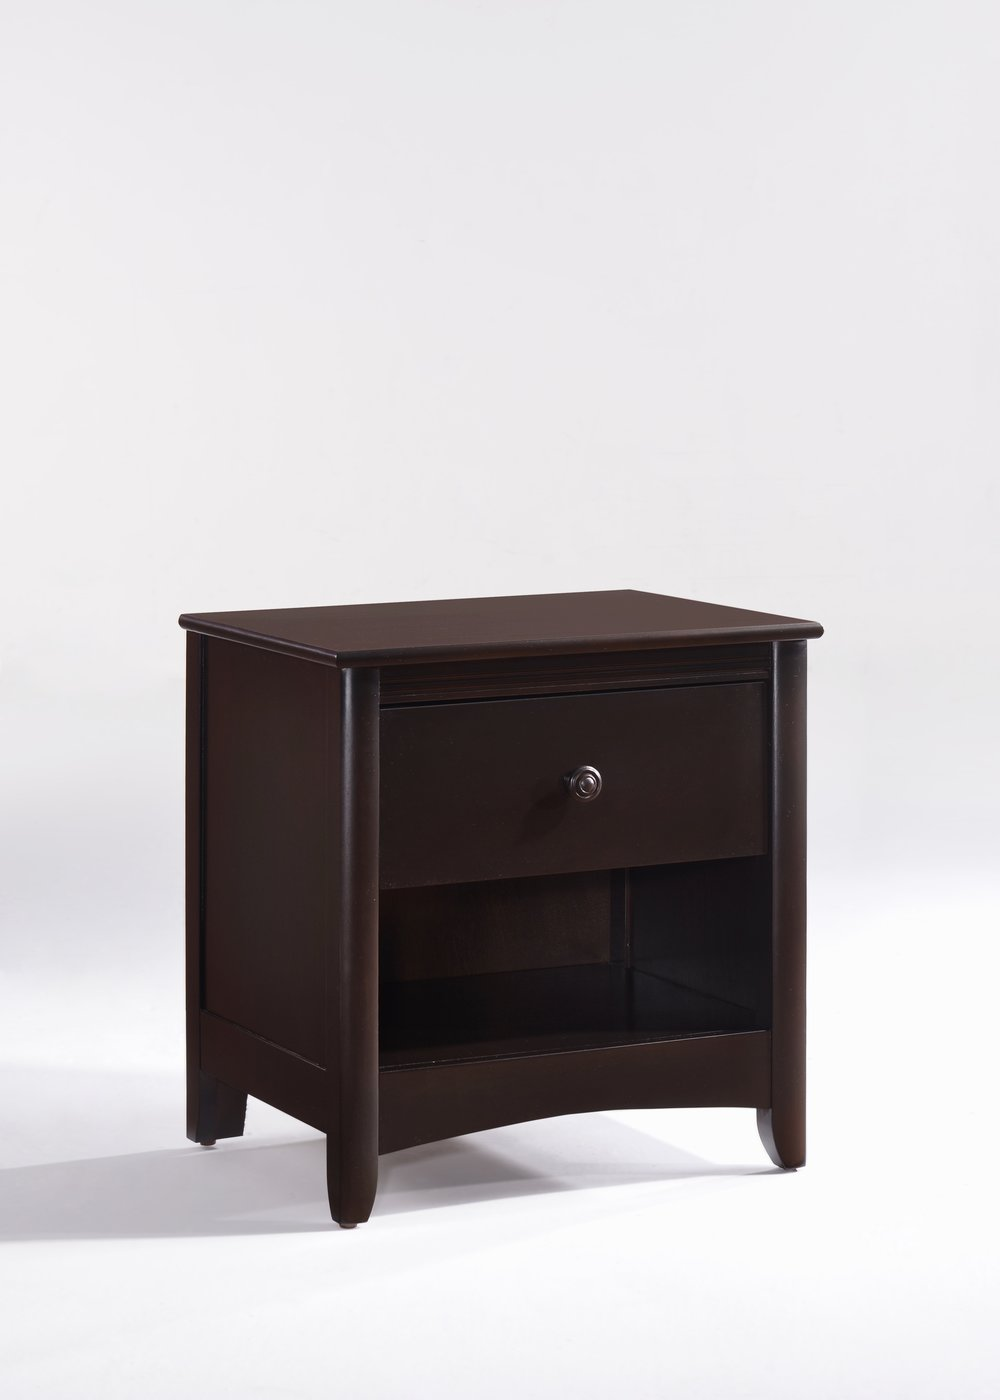 Secrets Nightstand Dark Chocolate Wood Knobs.jpg